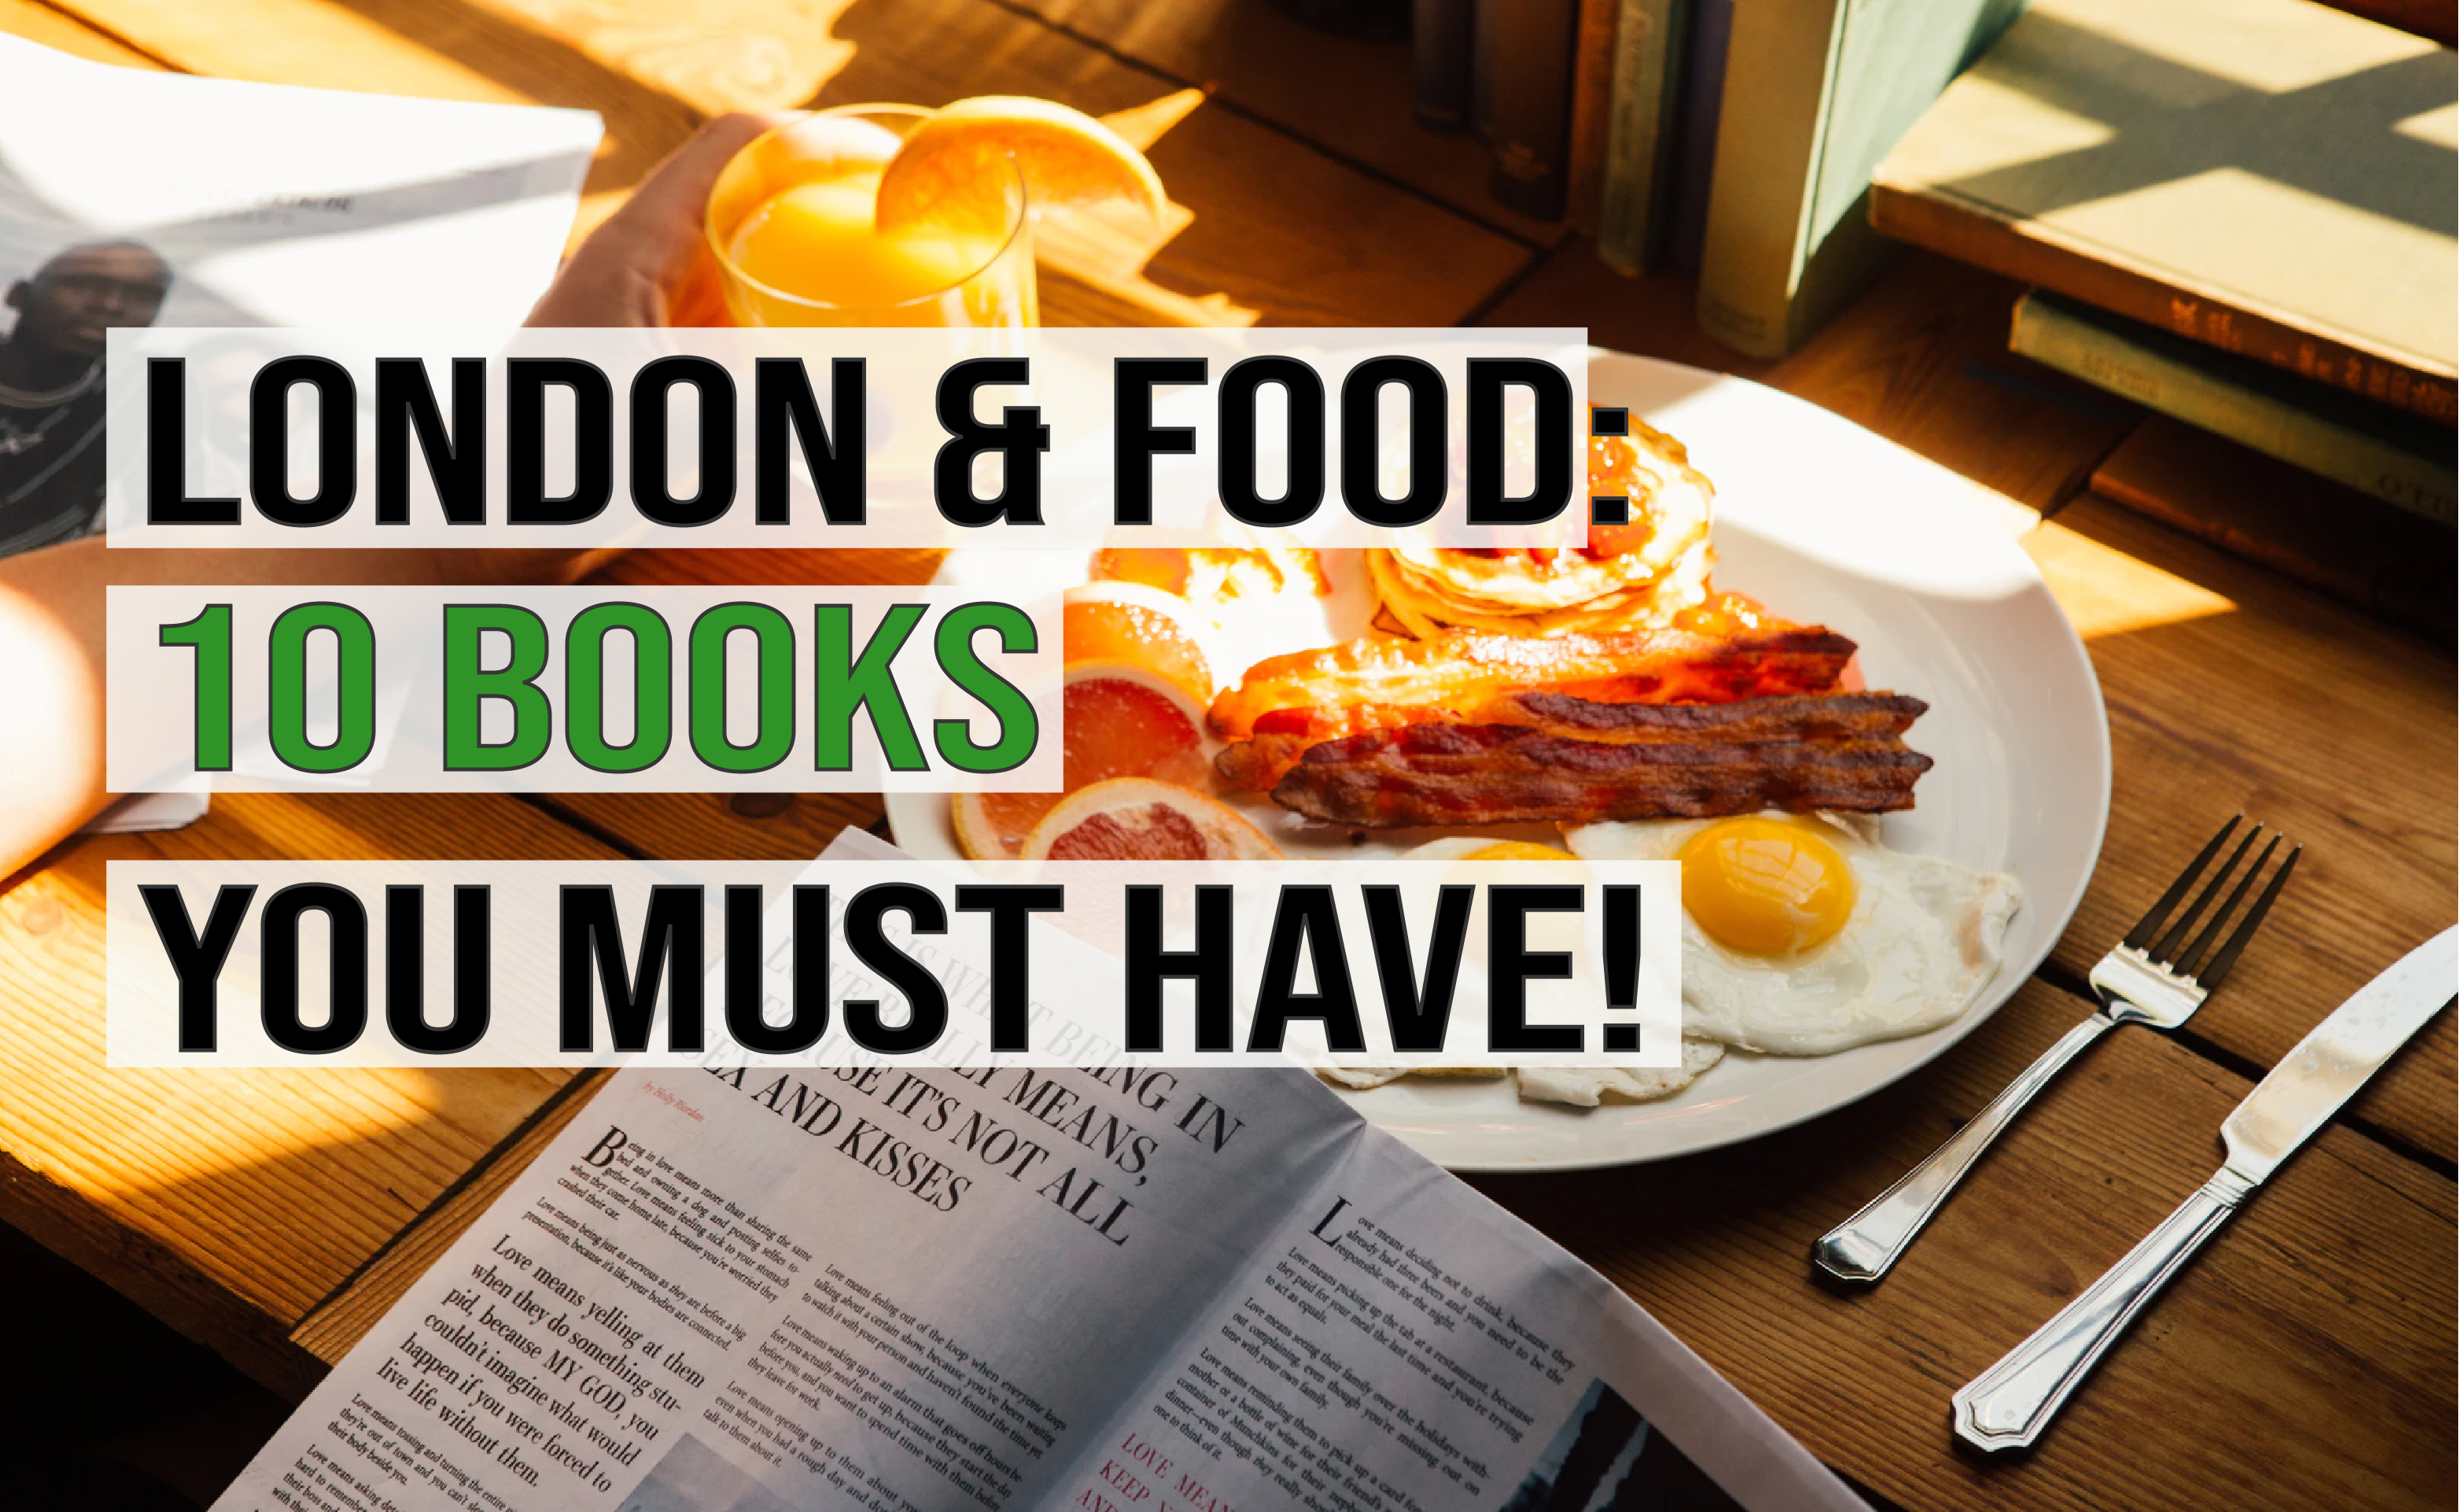 London & Food: 10 books you Must have!